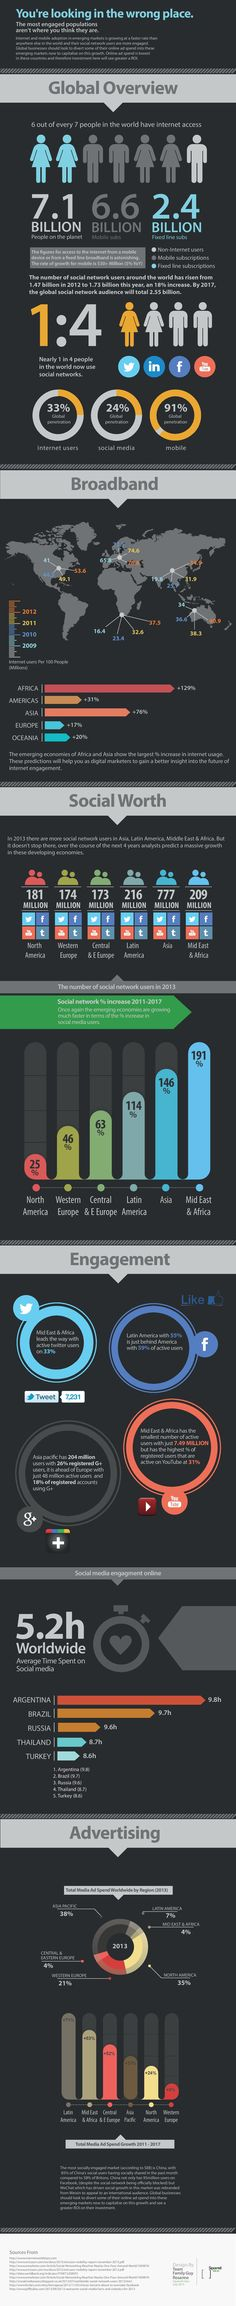 The Most Engaged Populations #infographic #Internet #socialmedia